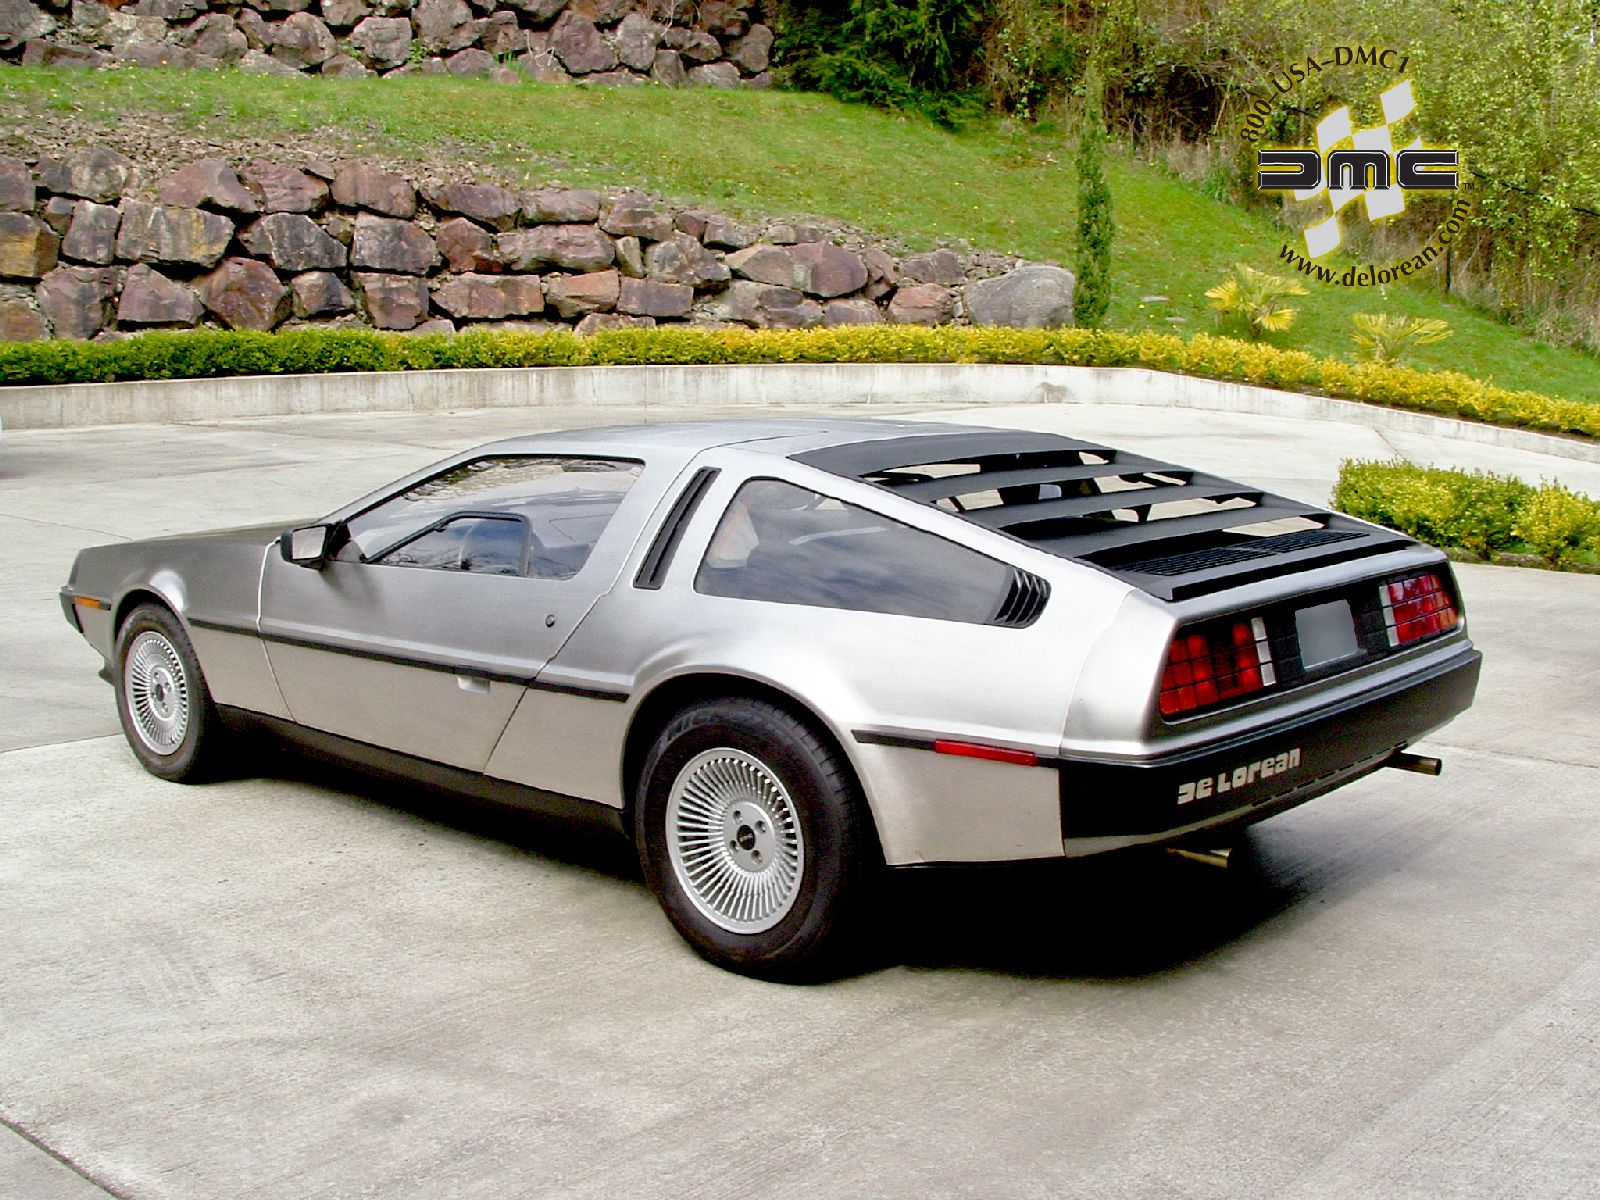 Used to dream about having one of these: Delorean